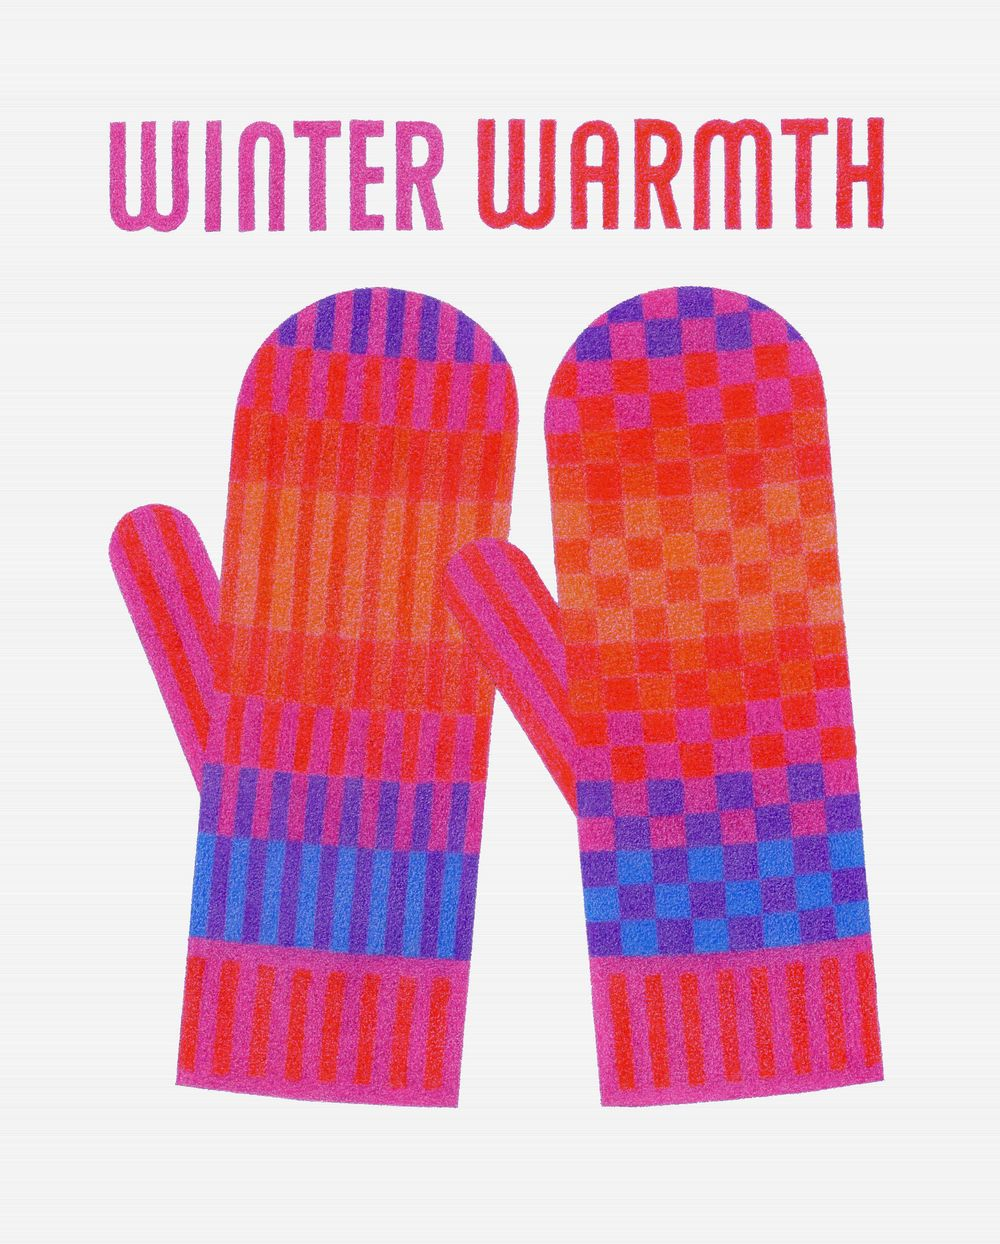 Winter Warmth - image 3 - student project